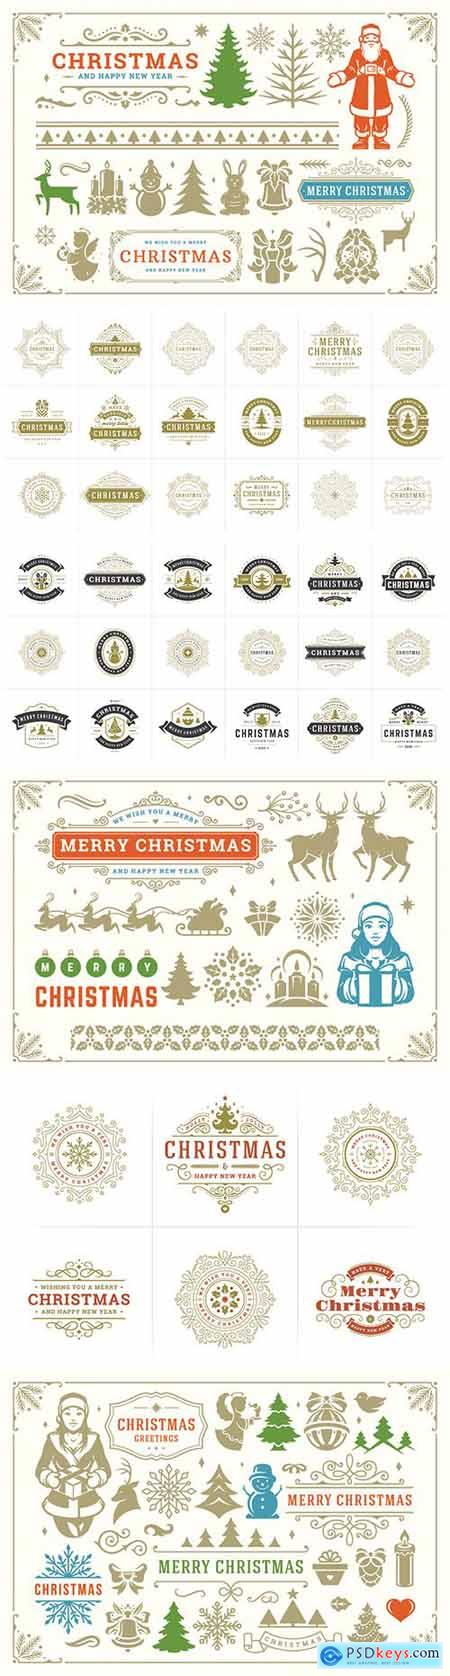 Christmas vector decoration symbols, ornate vignettes and icons